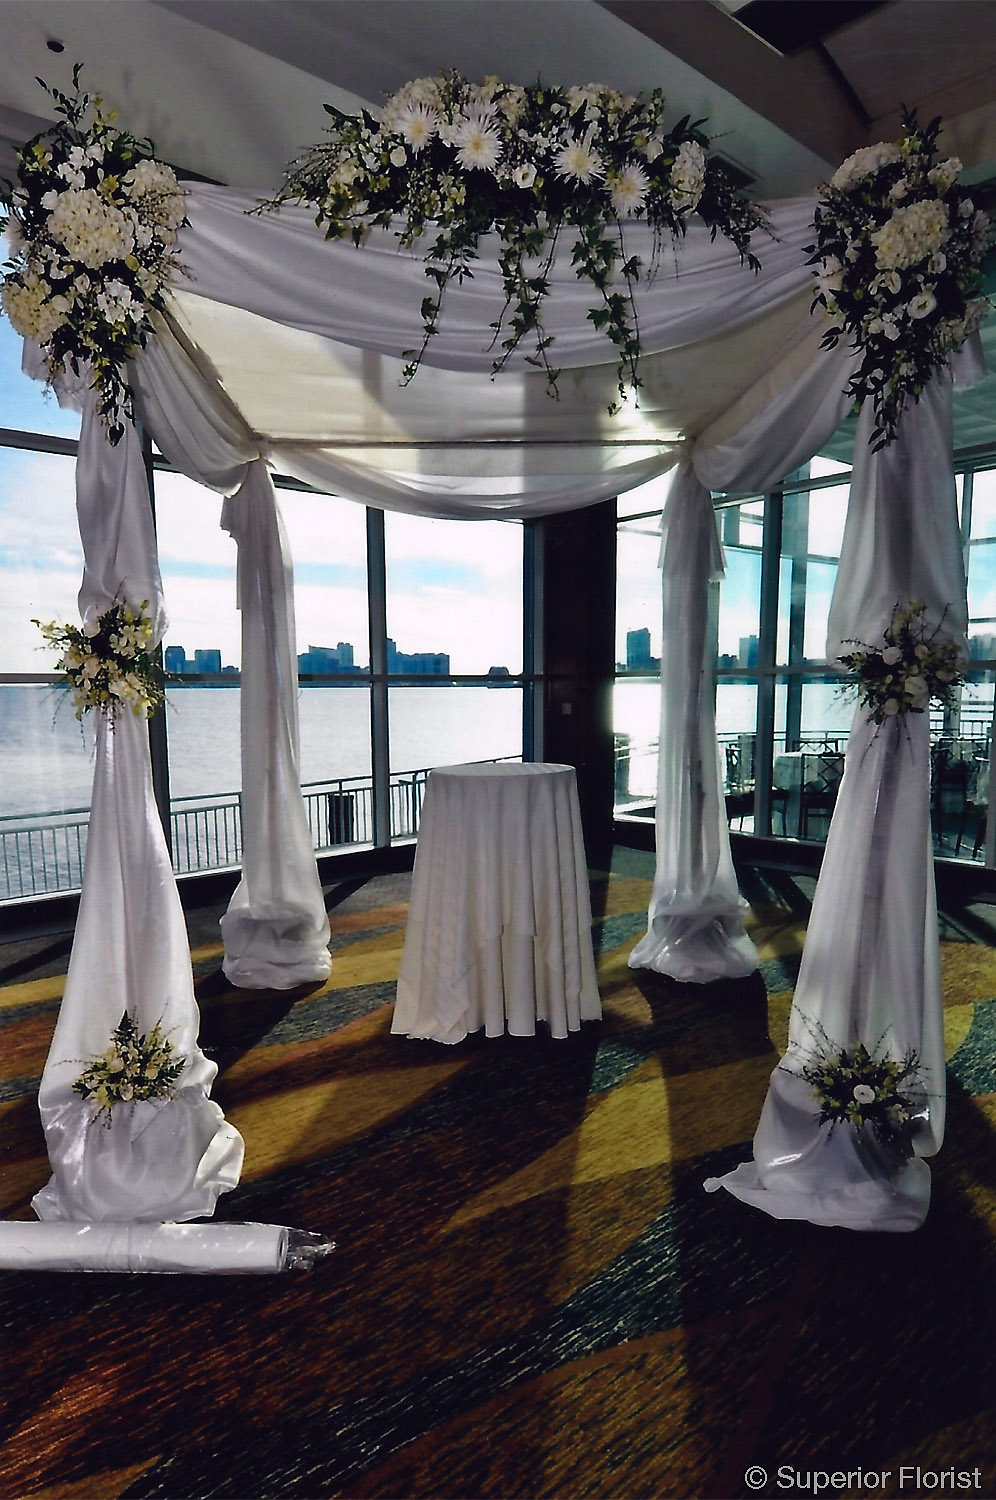 Superior Florist – Wedding Ceremony: Chuppah draped in white, bridal satin fabric. Beautiful arrangements of flowers in all white. Teardrops, clusters and swag arrangements.